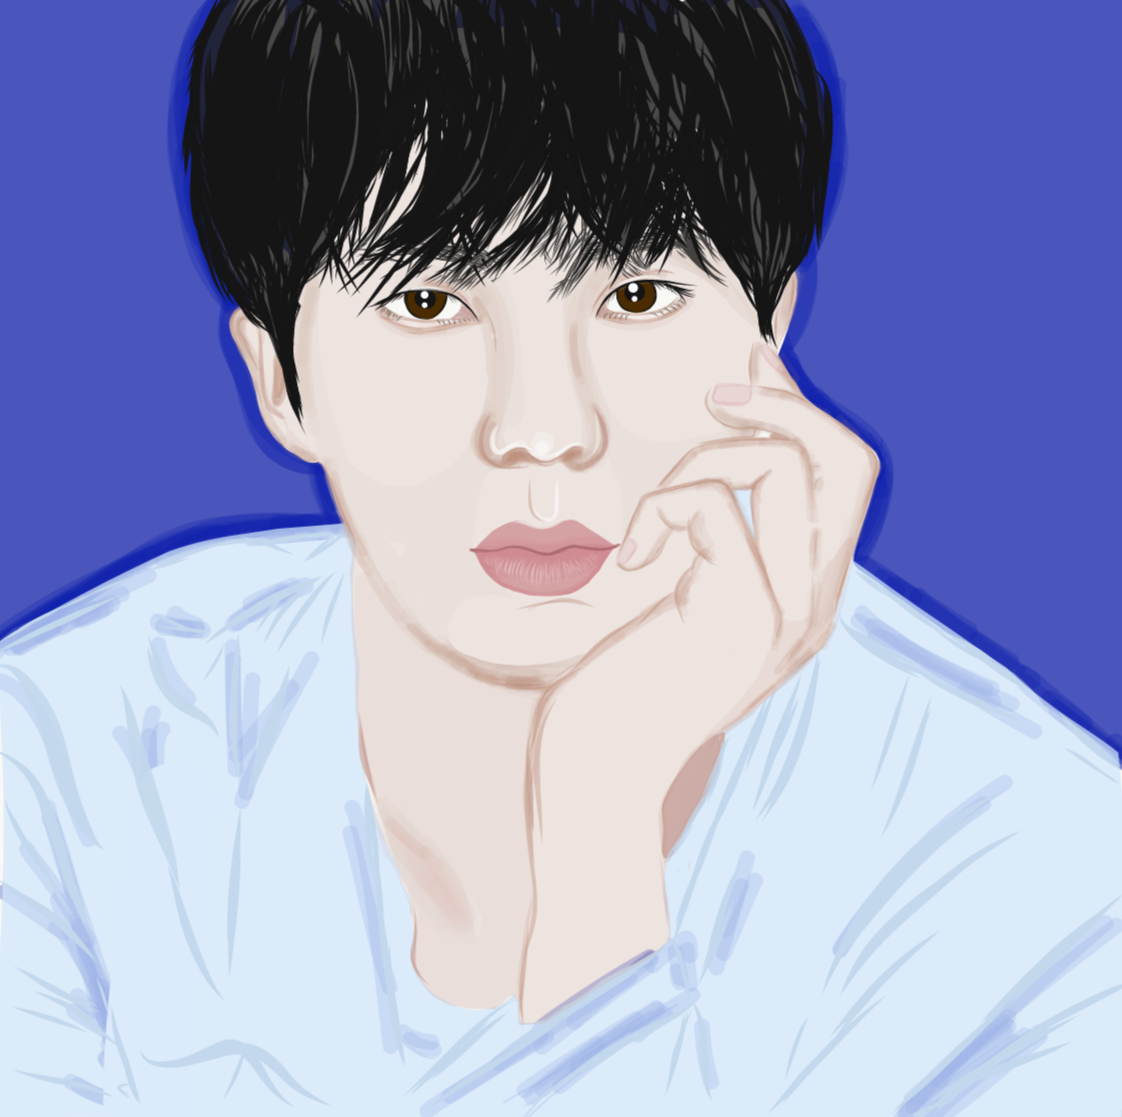 adobe draw,artworks,bts,btsfanart,Digital Art ,Digital Drawing,drawings,fanart,happy birthday jin,ILLUSTRATION ,Jin,kpop,seokjin